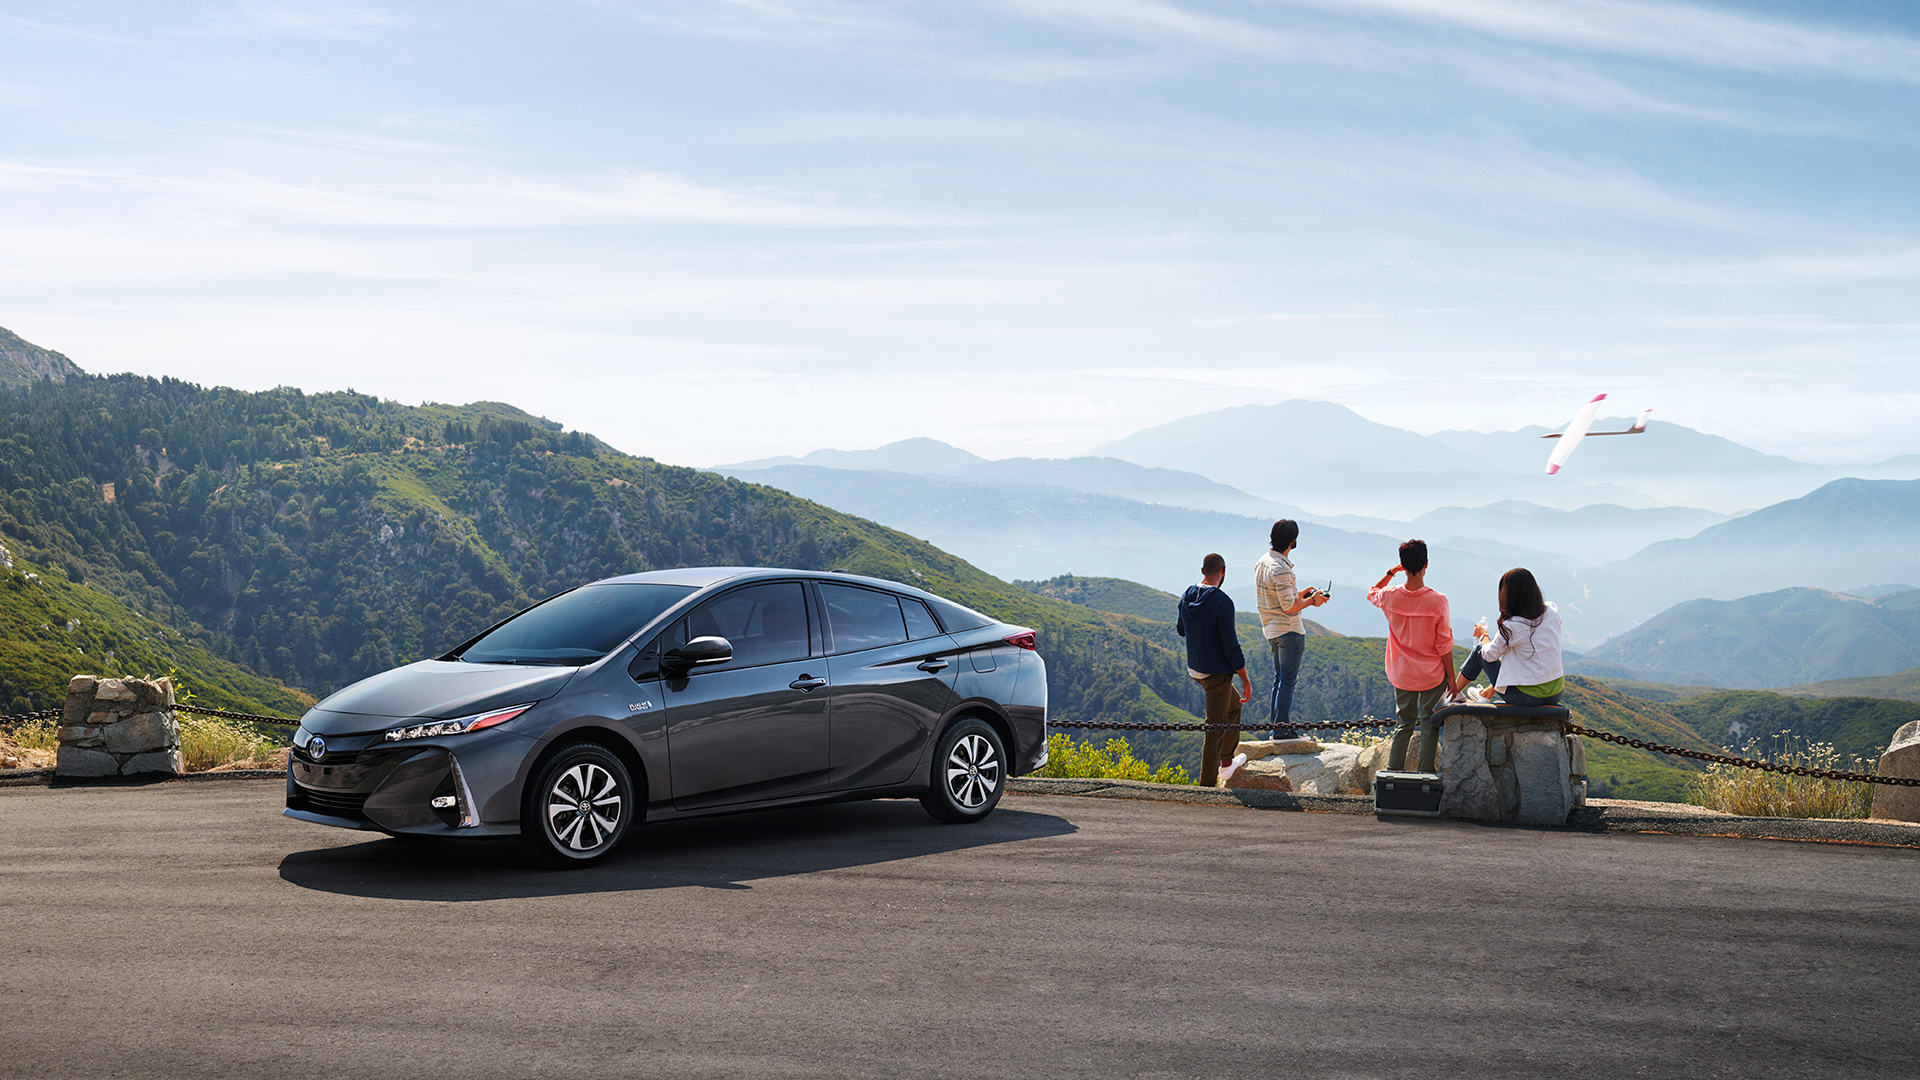 2017 Toyota Prius Prime Overview The News Wheel